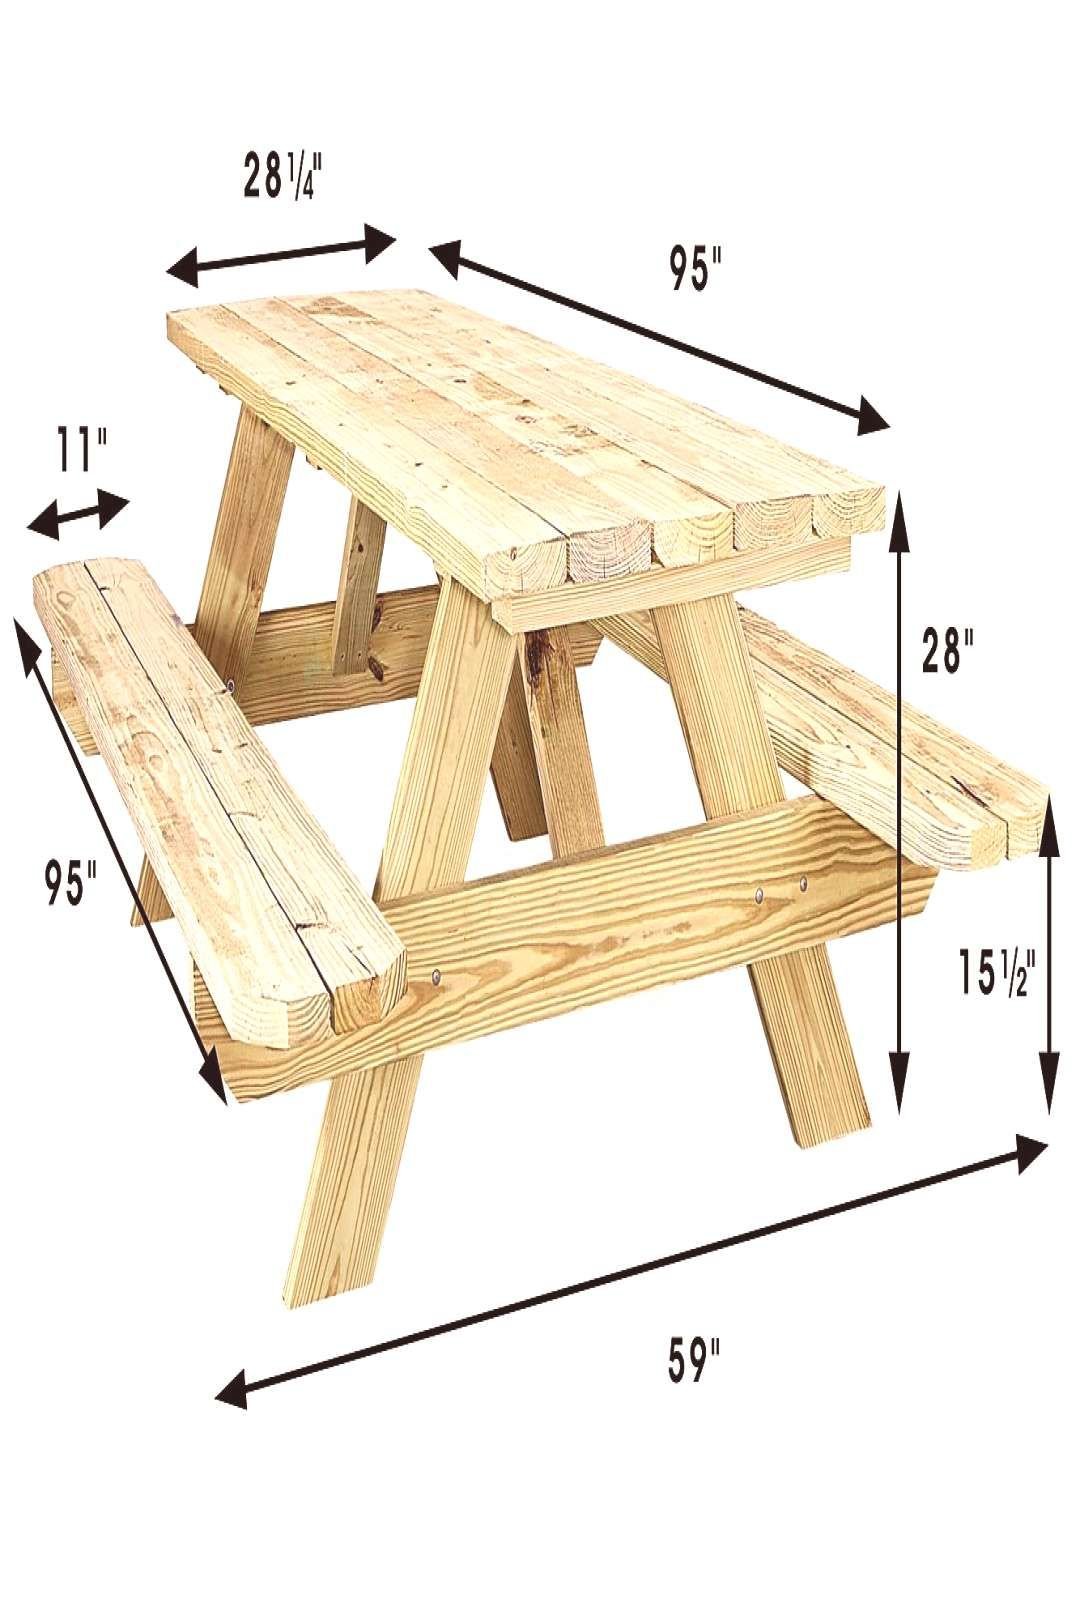 Economy Aframe Wooden Picnic Table H5163 Uline 8 Economy A